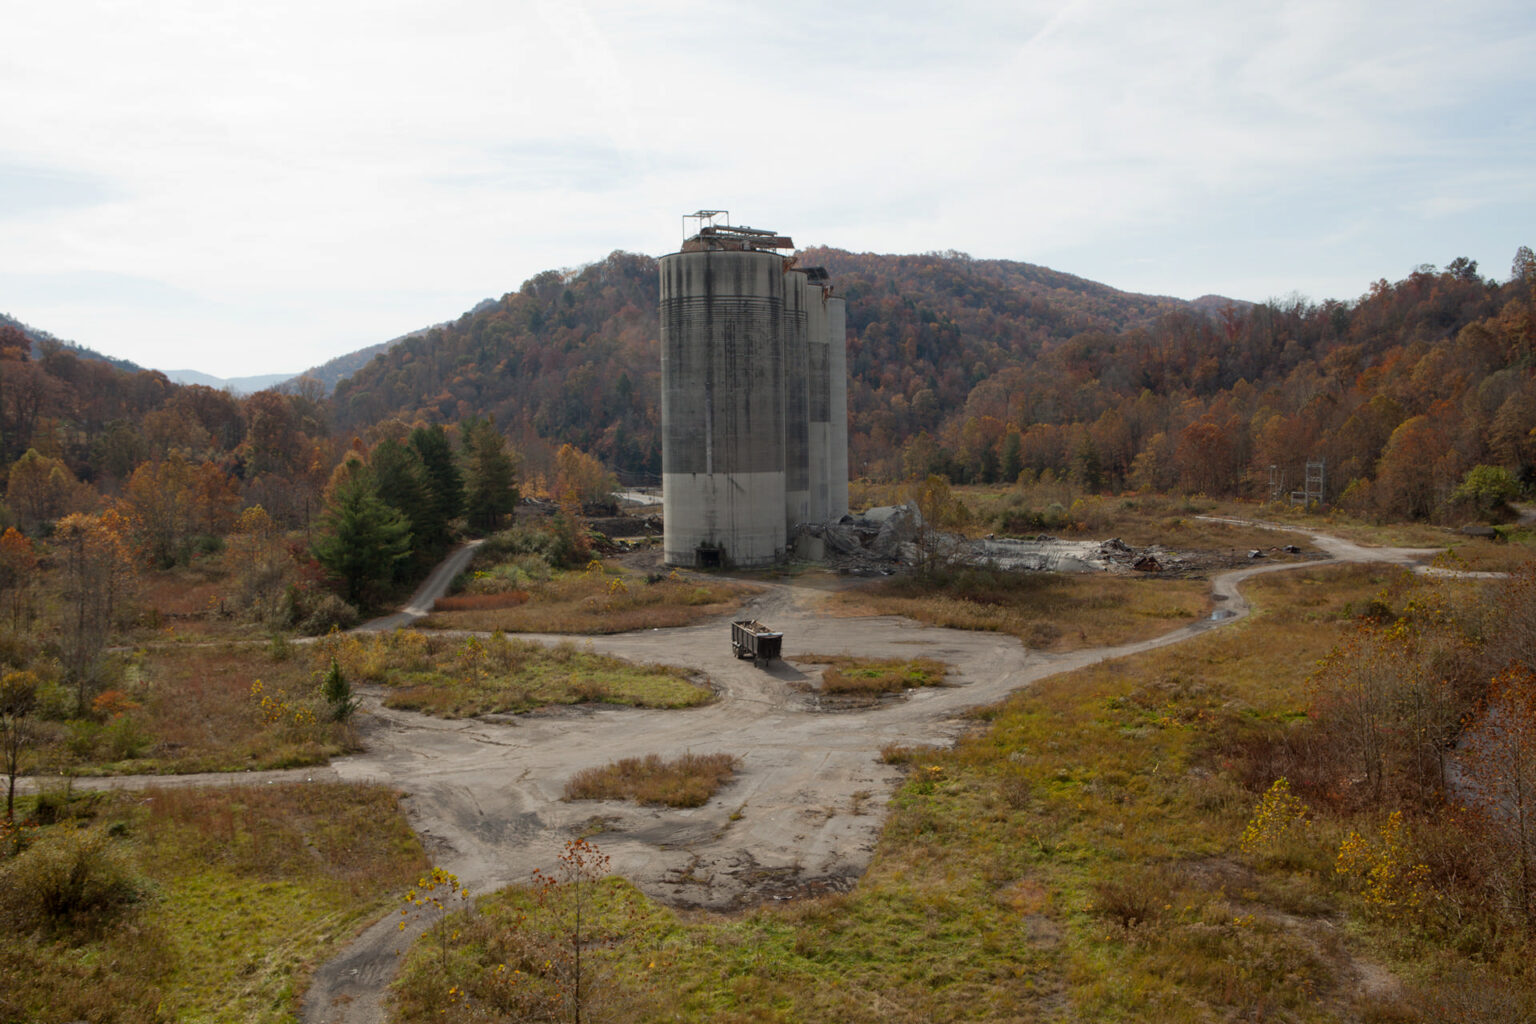 Disused mineshaft, Wise County, Virginia, 2012